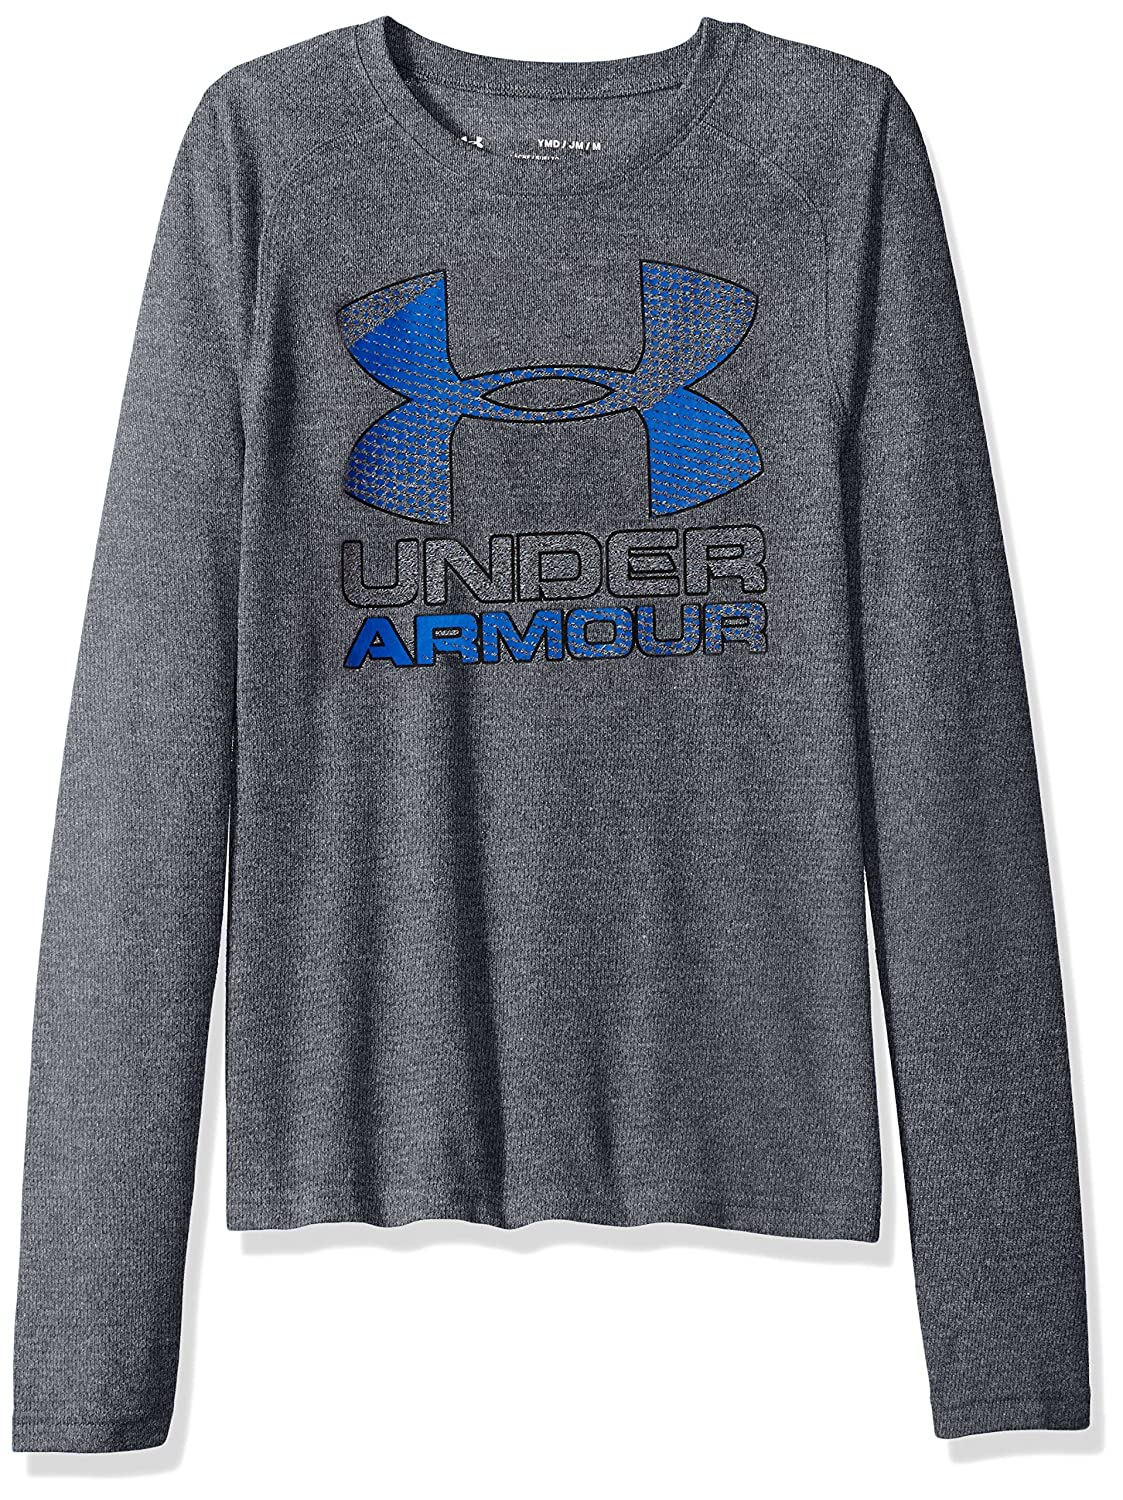 Under Armour Camiseta de Manga Larga para Chicos Logo h/íbrido Grande